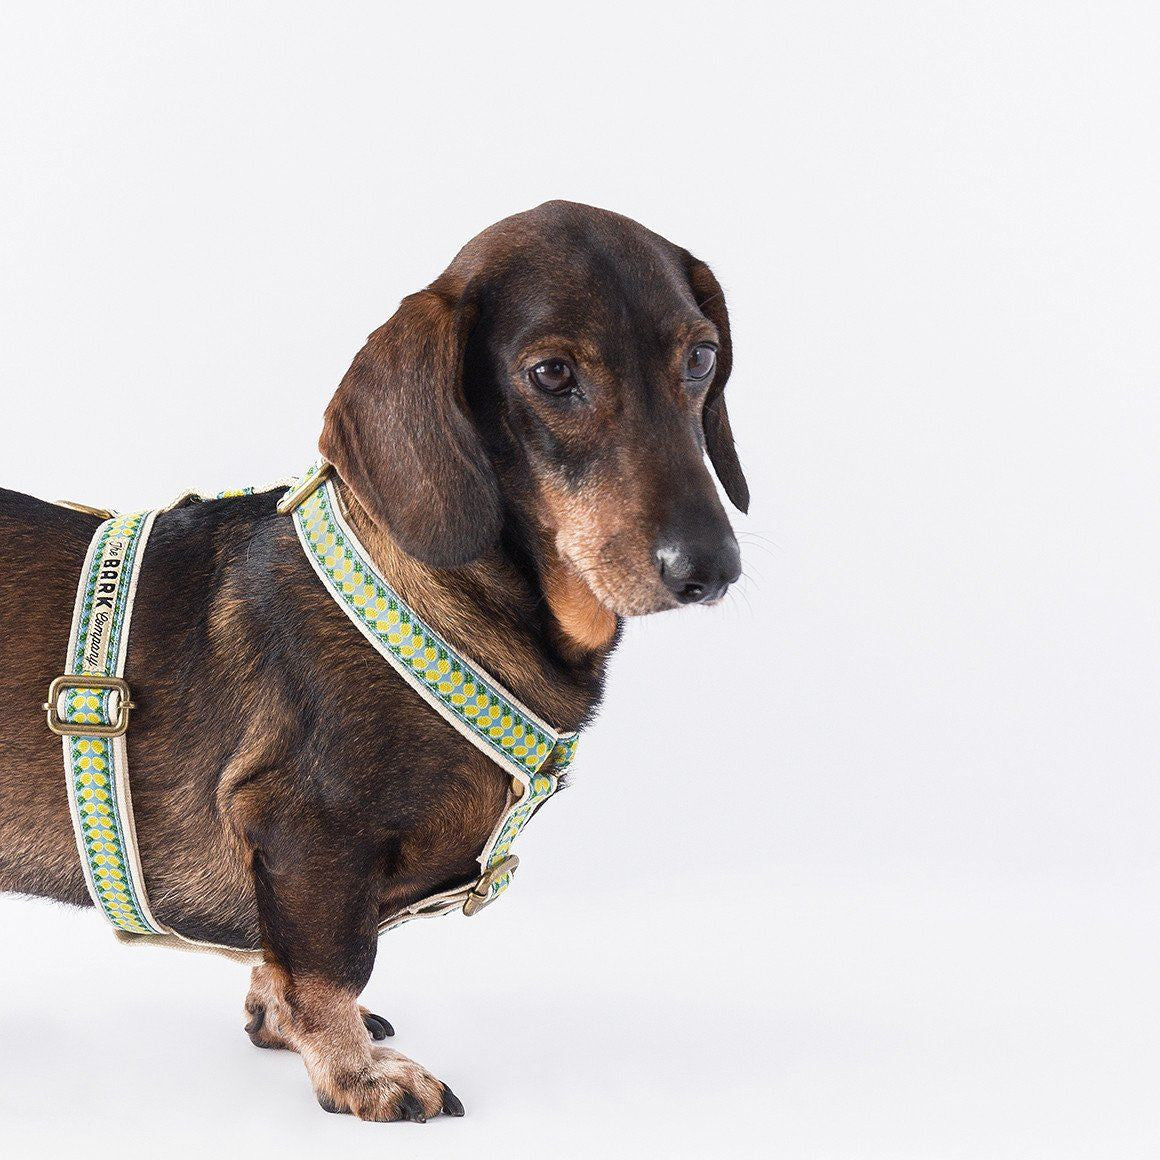 Pineapple dog harness - The Bark Co. Handmade dog Harness